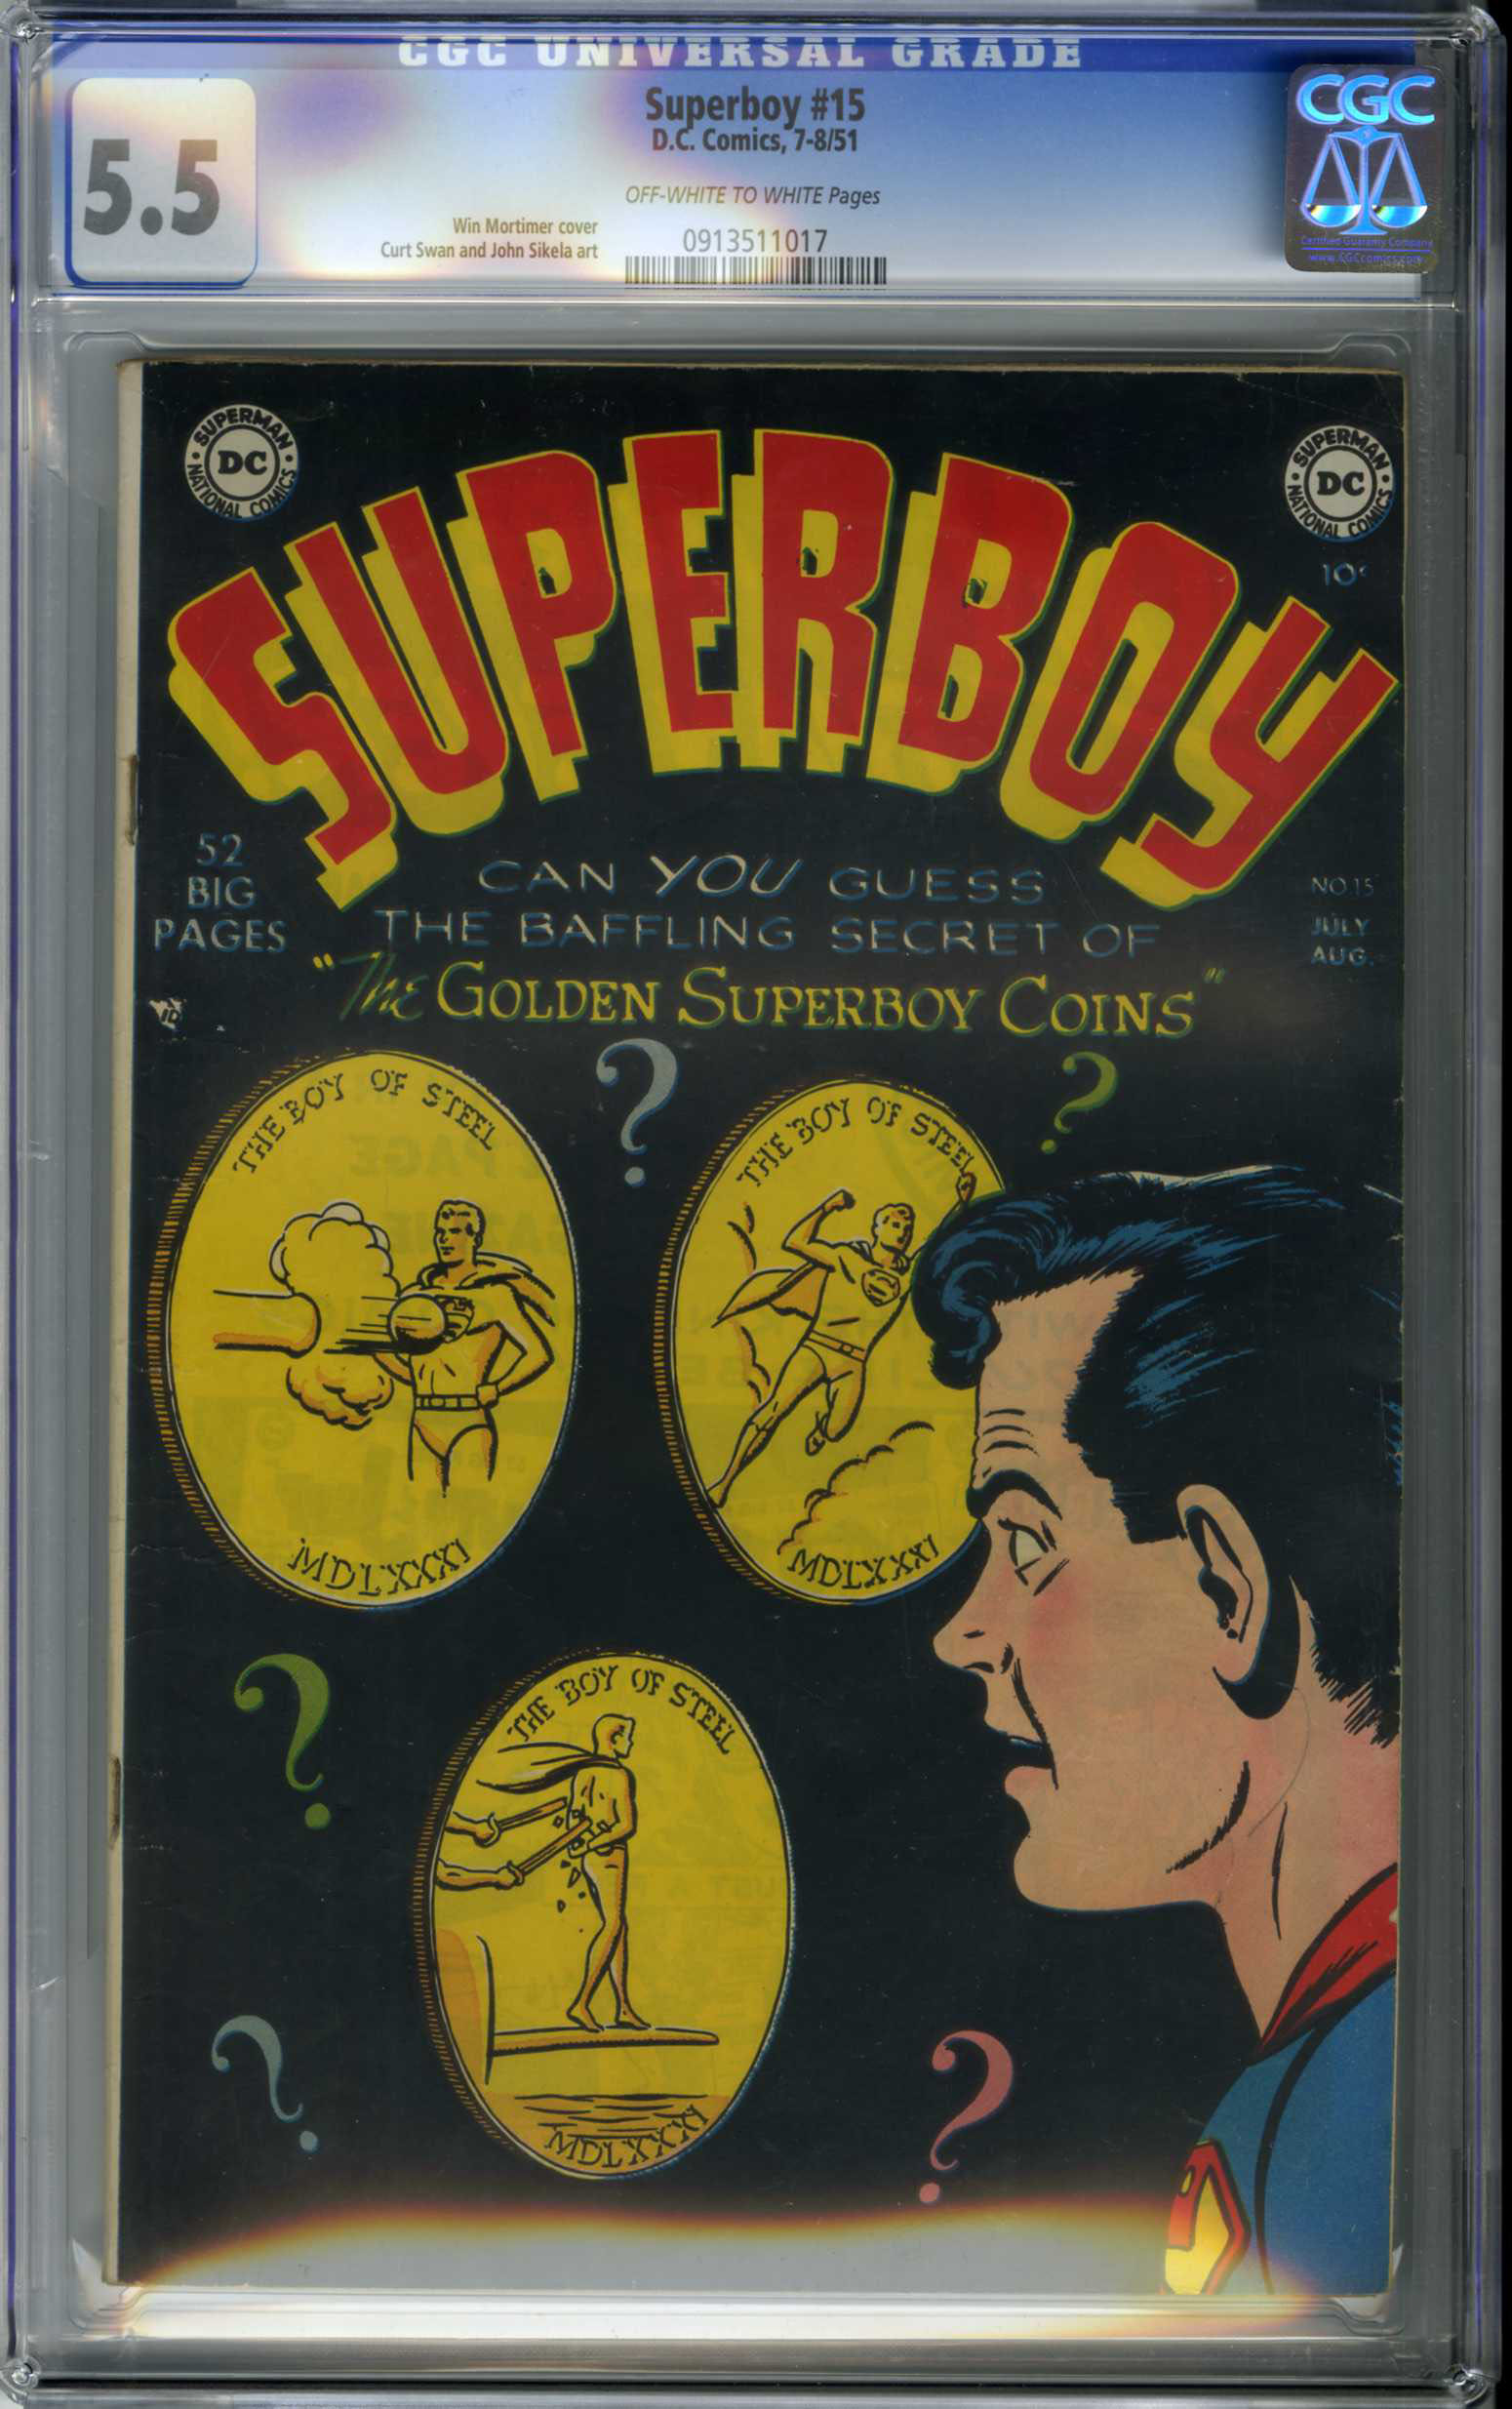 SUPERBOY #15 (1951) CGC FN- 5.5 OWW Pages CURT SWAN ART / WIN MORTIMER COVER